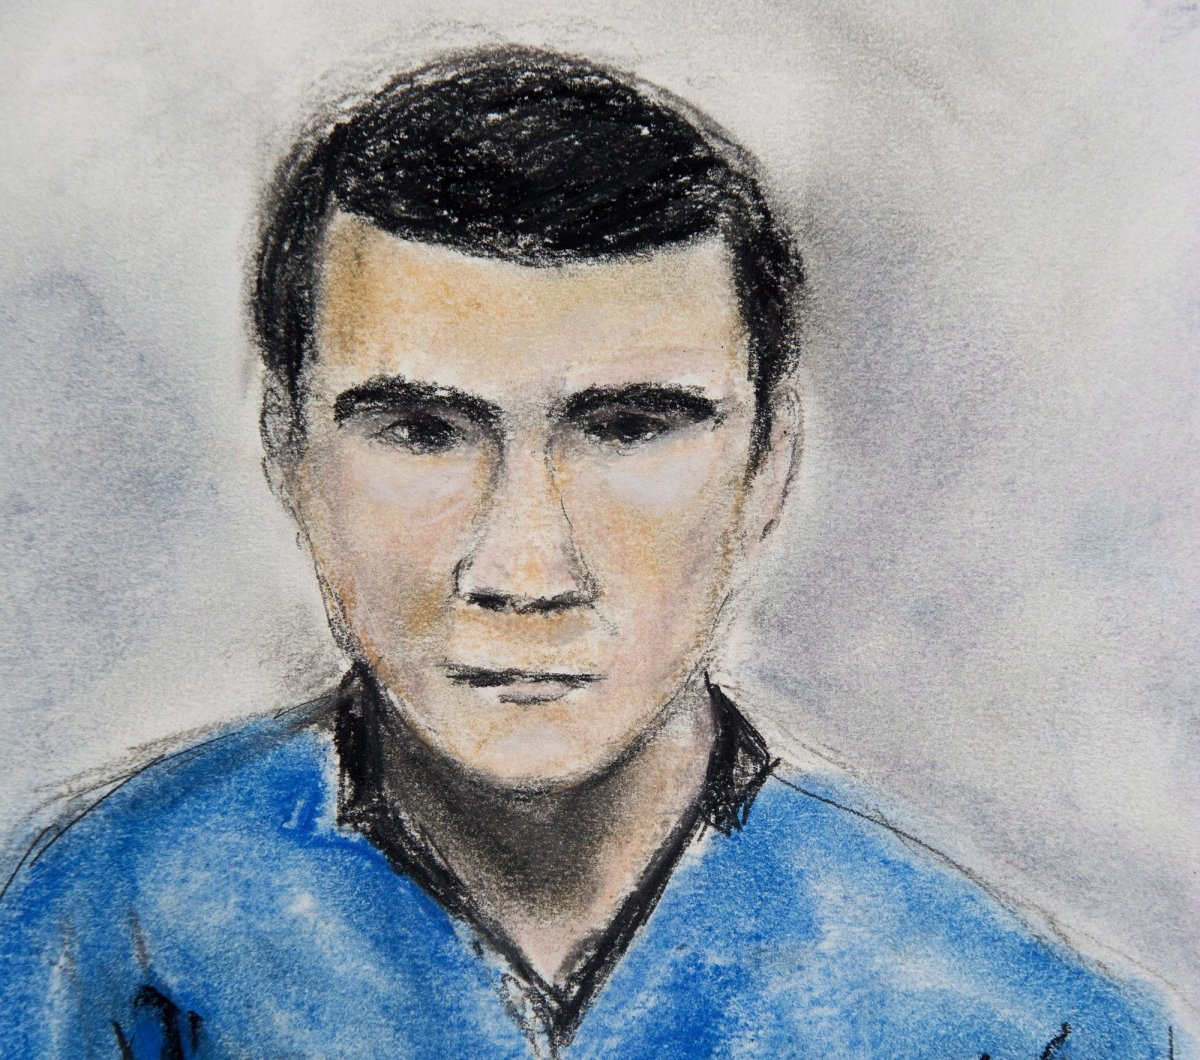 A sketch of Matthew de Grood, appearing in a Calgary court on Tuesday April 22, 2014, by artist Janice Fletcher, is shown.